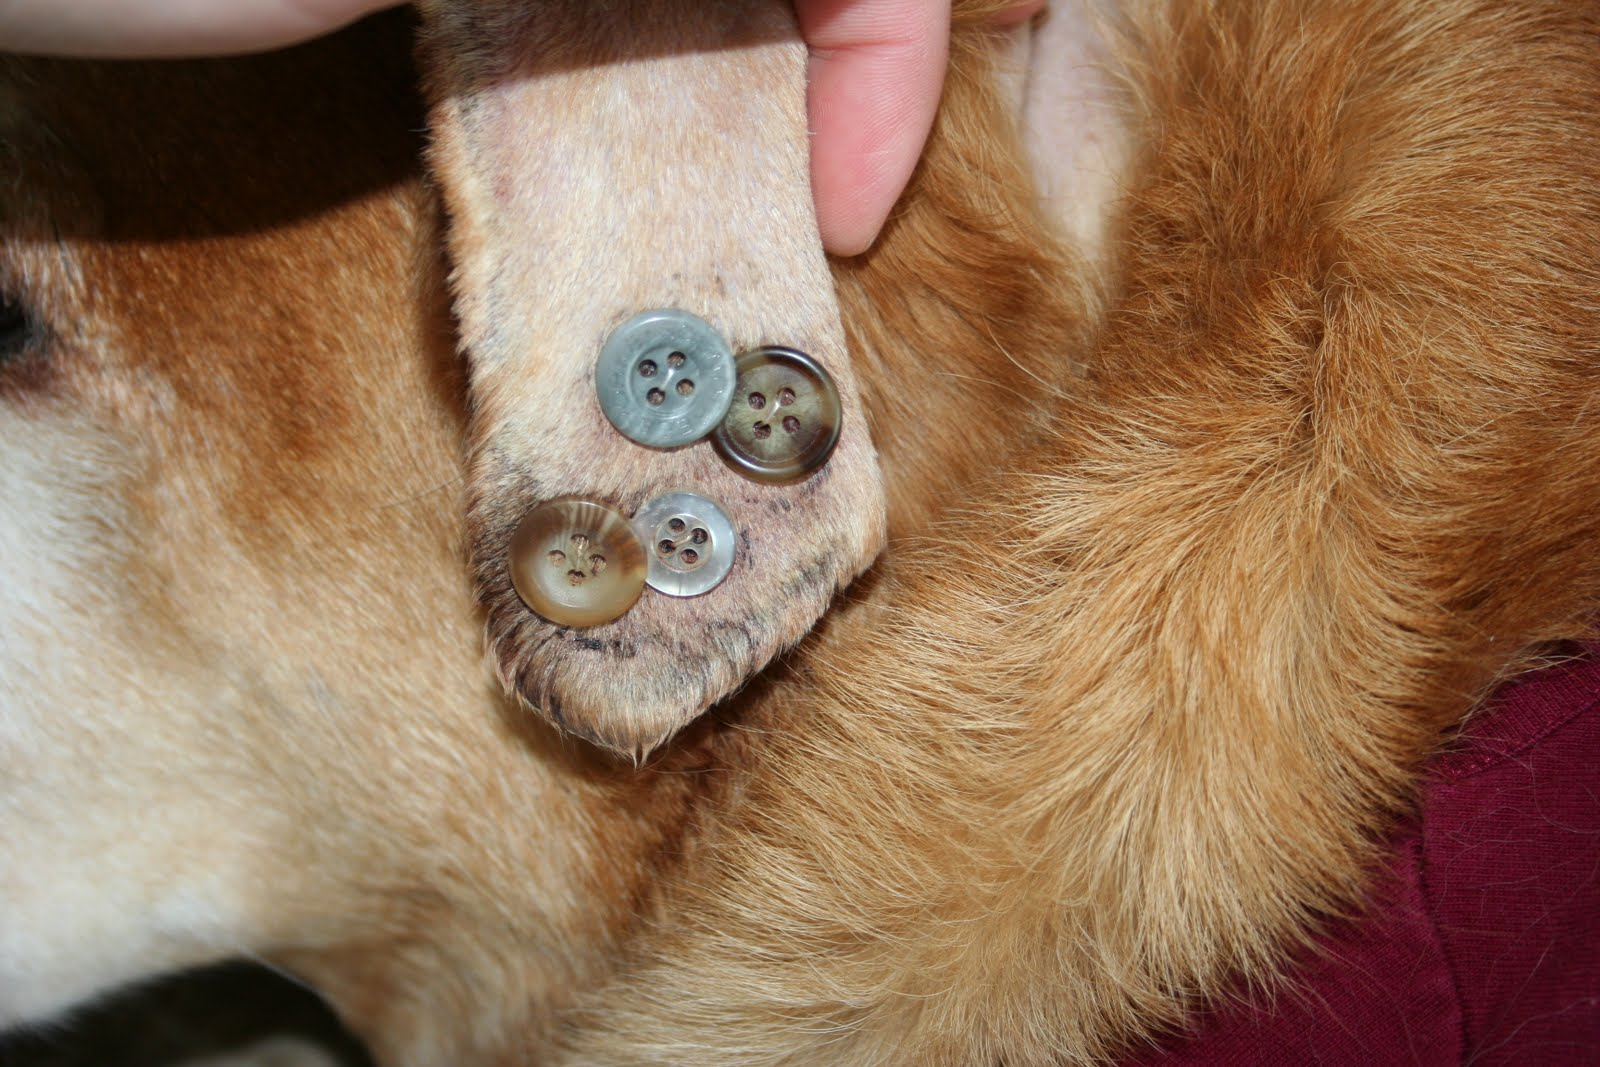 Weird Mole On Dogs Ear